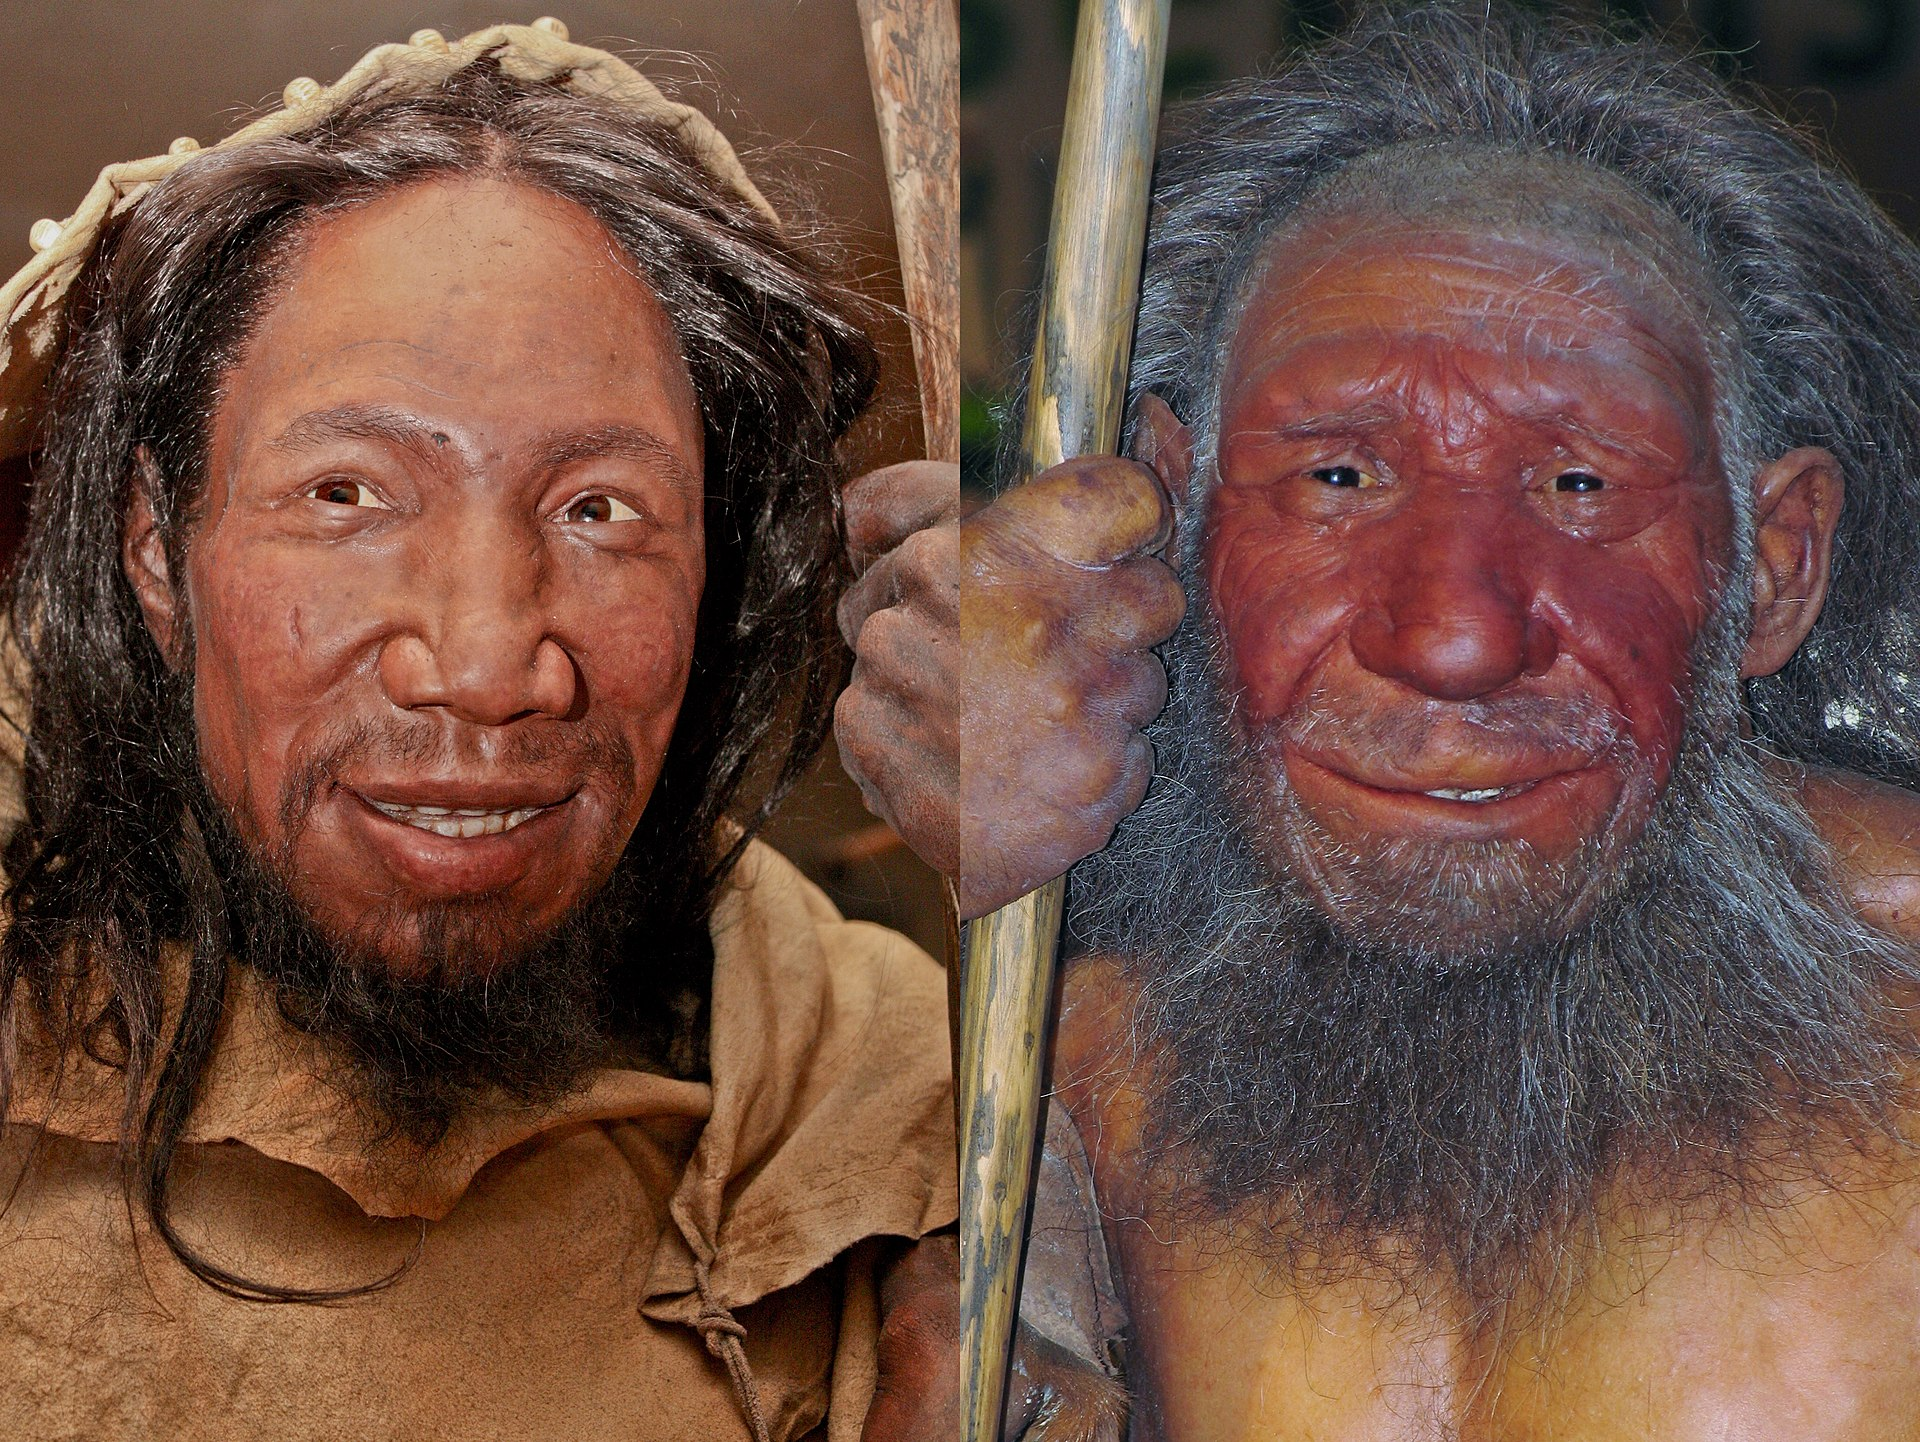 Neanderthal and Human, Neanderthal vs Human